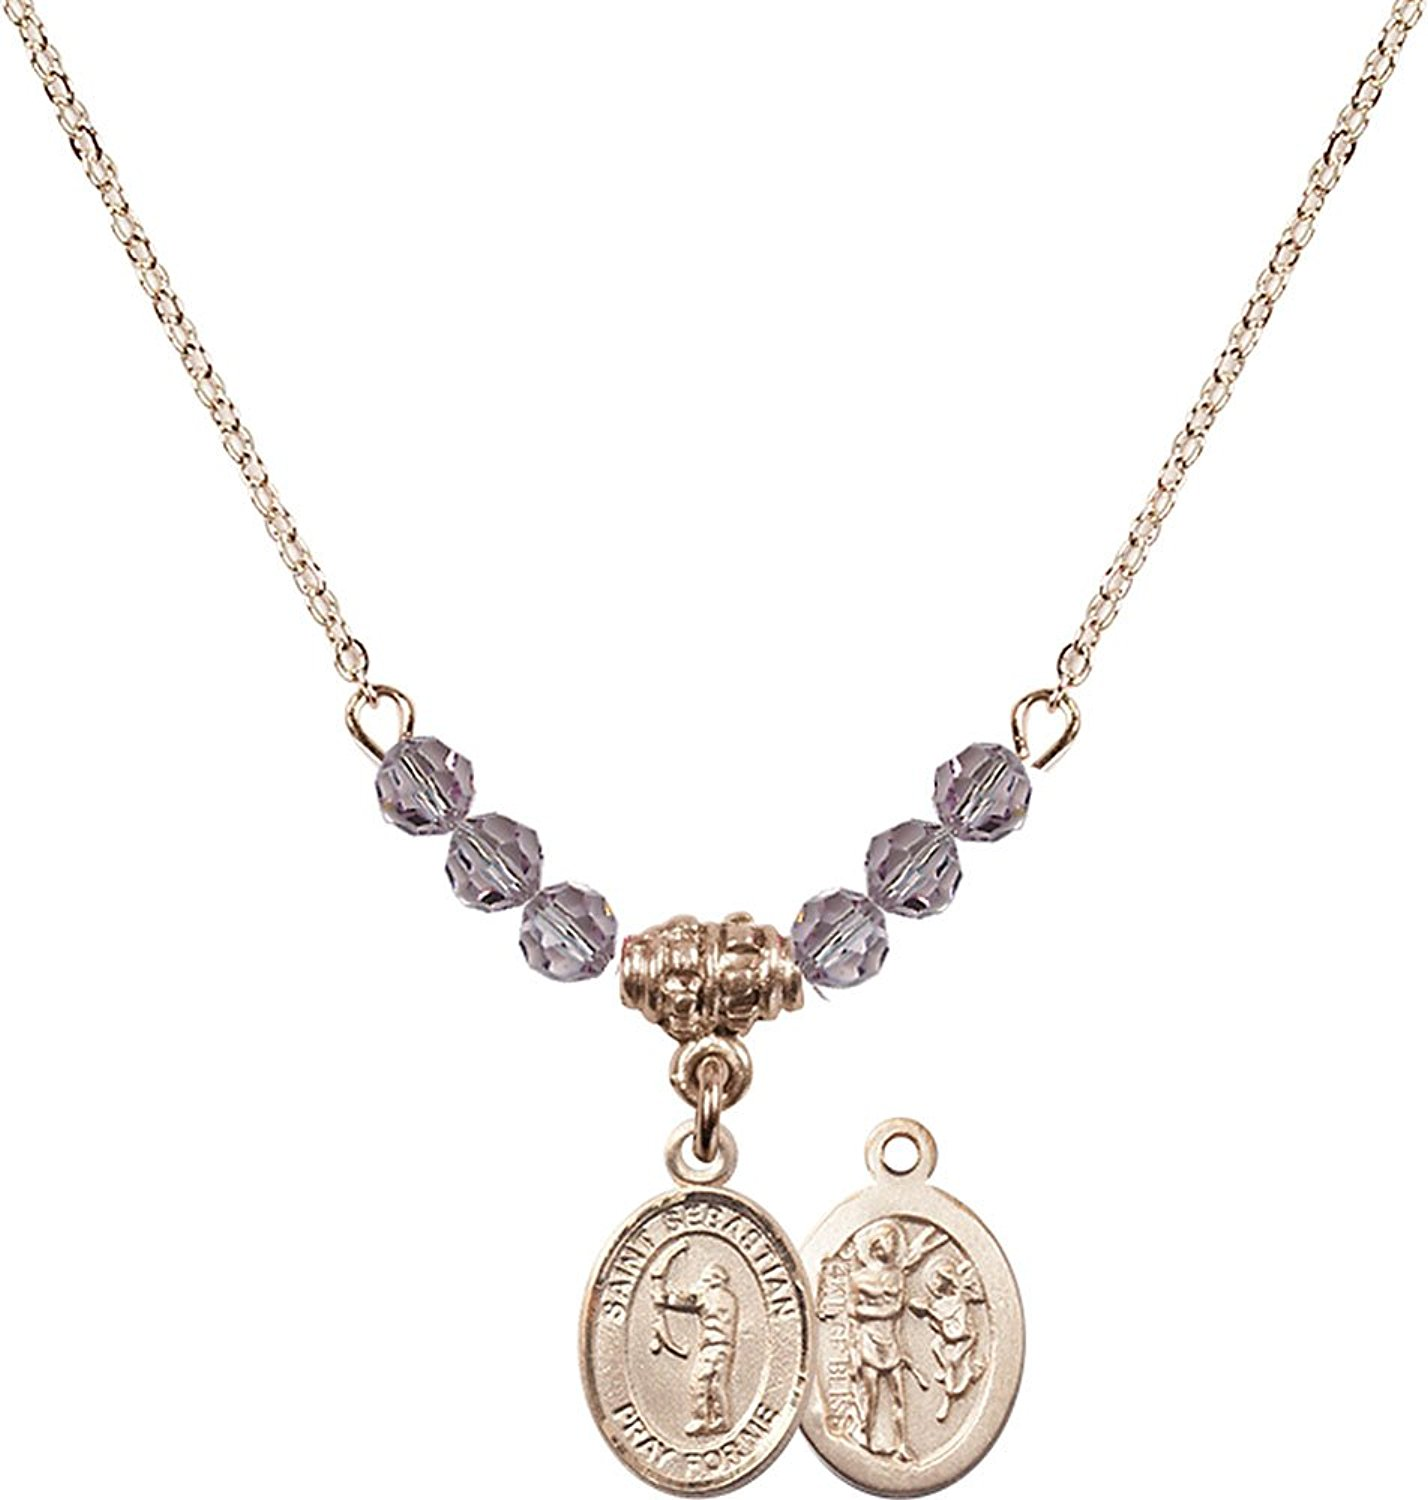 18-Inch Rhodium Plated Necklace with 6mm Light Rose Birthstone Beads and Sterling Silver Saint Christopher//Archery Charm.